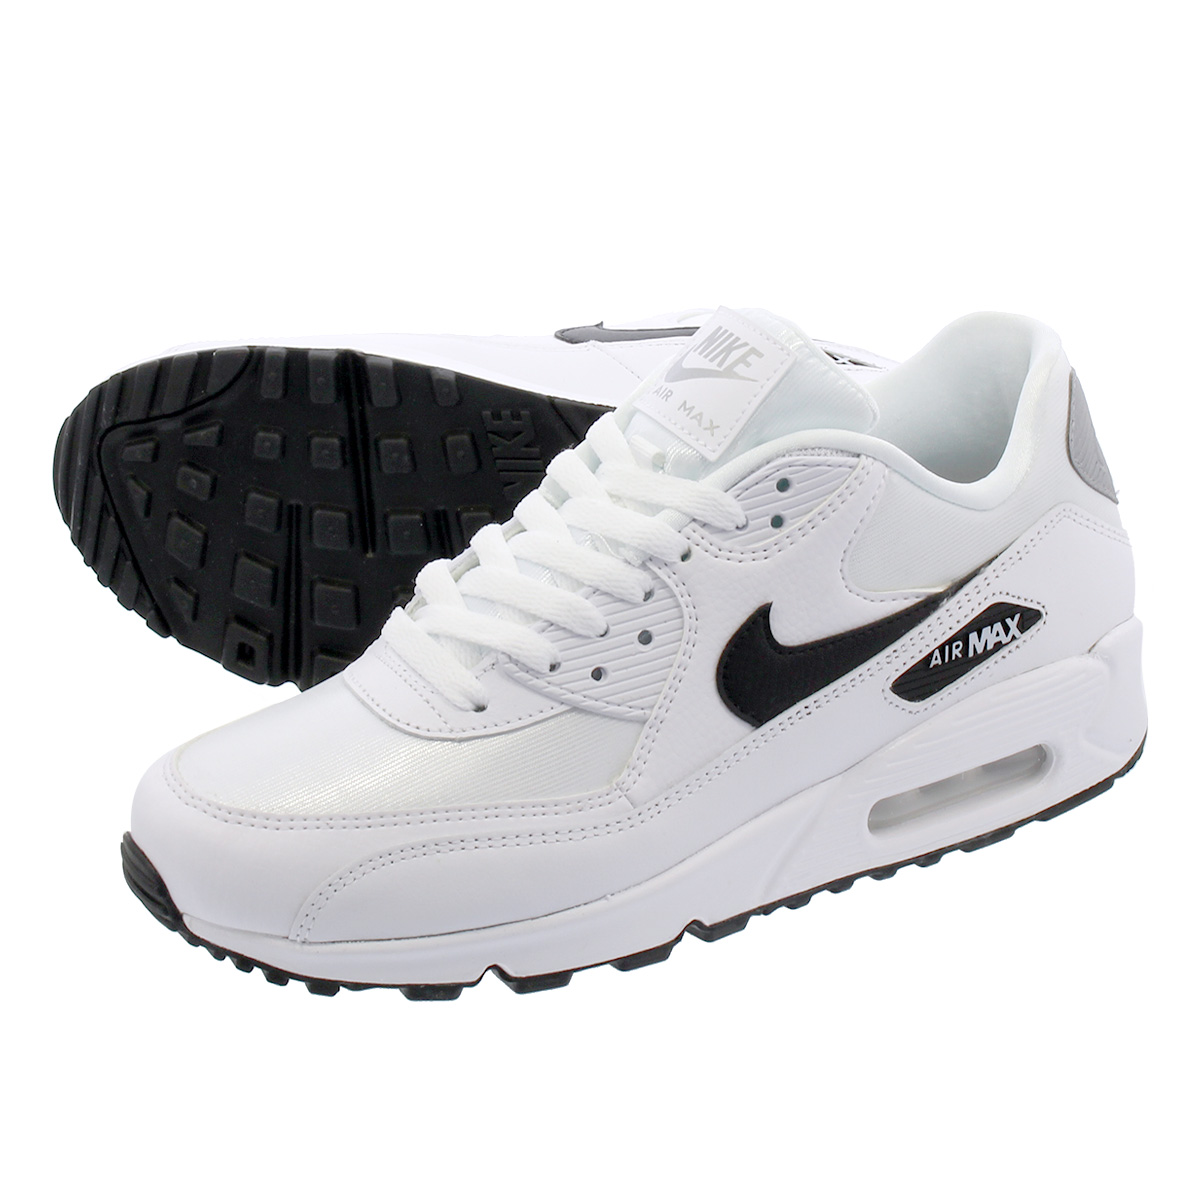 Nike WMNS Air Max 90 New White Silver Women's Lifestyle Sneakers 325213 137